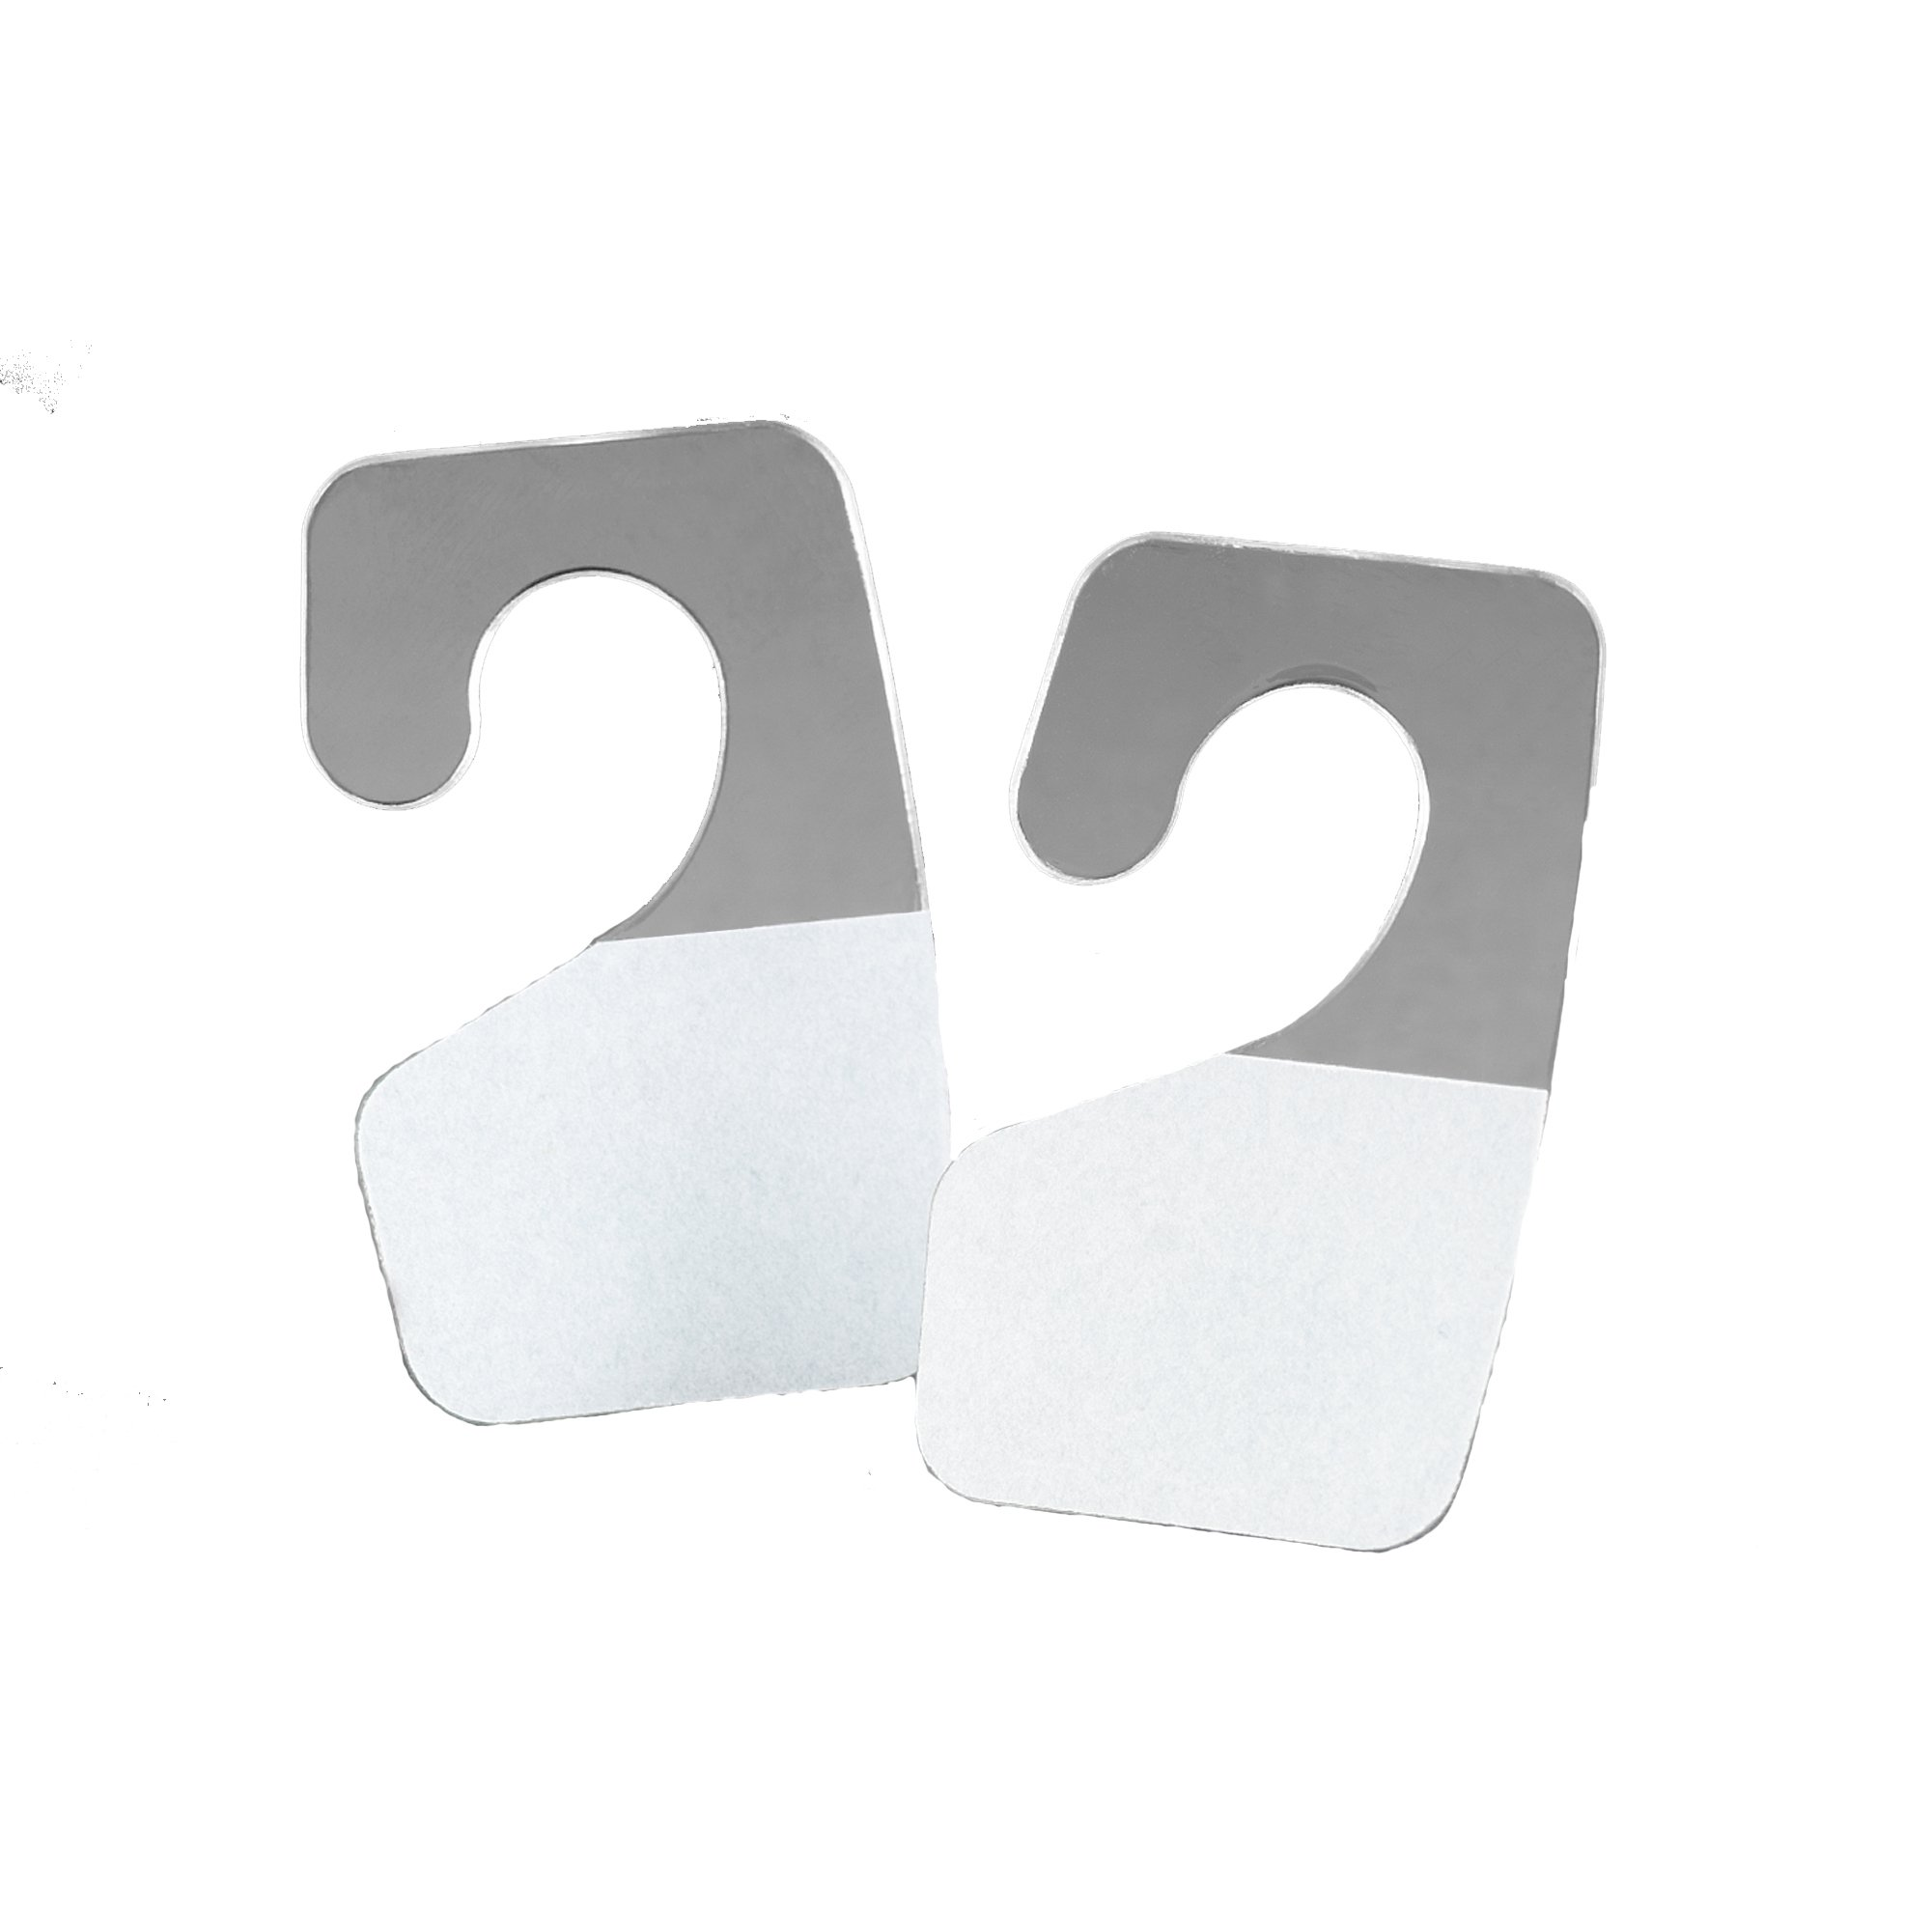 3M ScotchPad Hang Tab 1072 Clear, 7/8 in x 1 3/8 in (Case of 500) by 3M